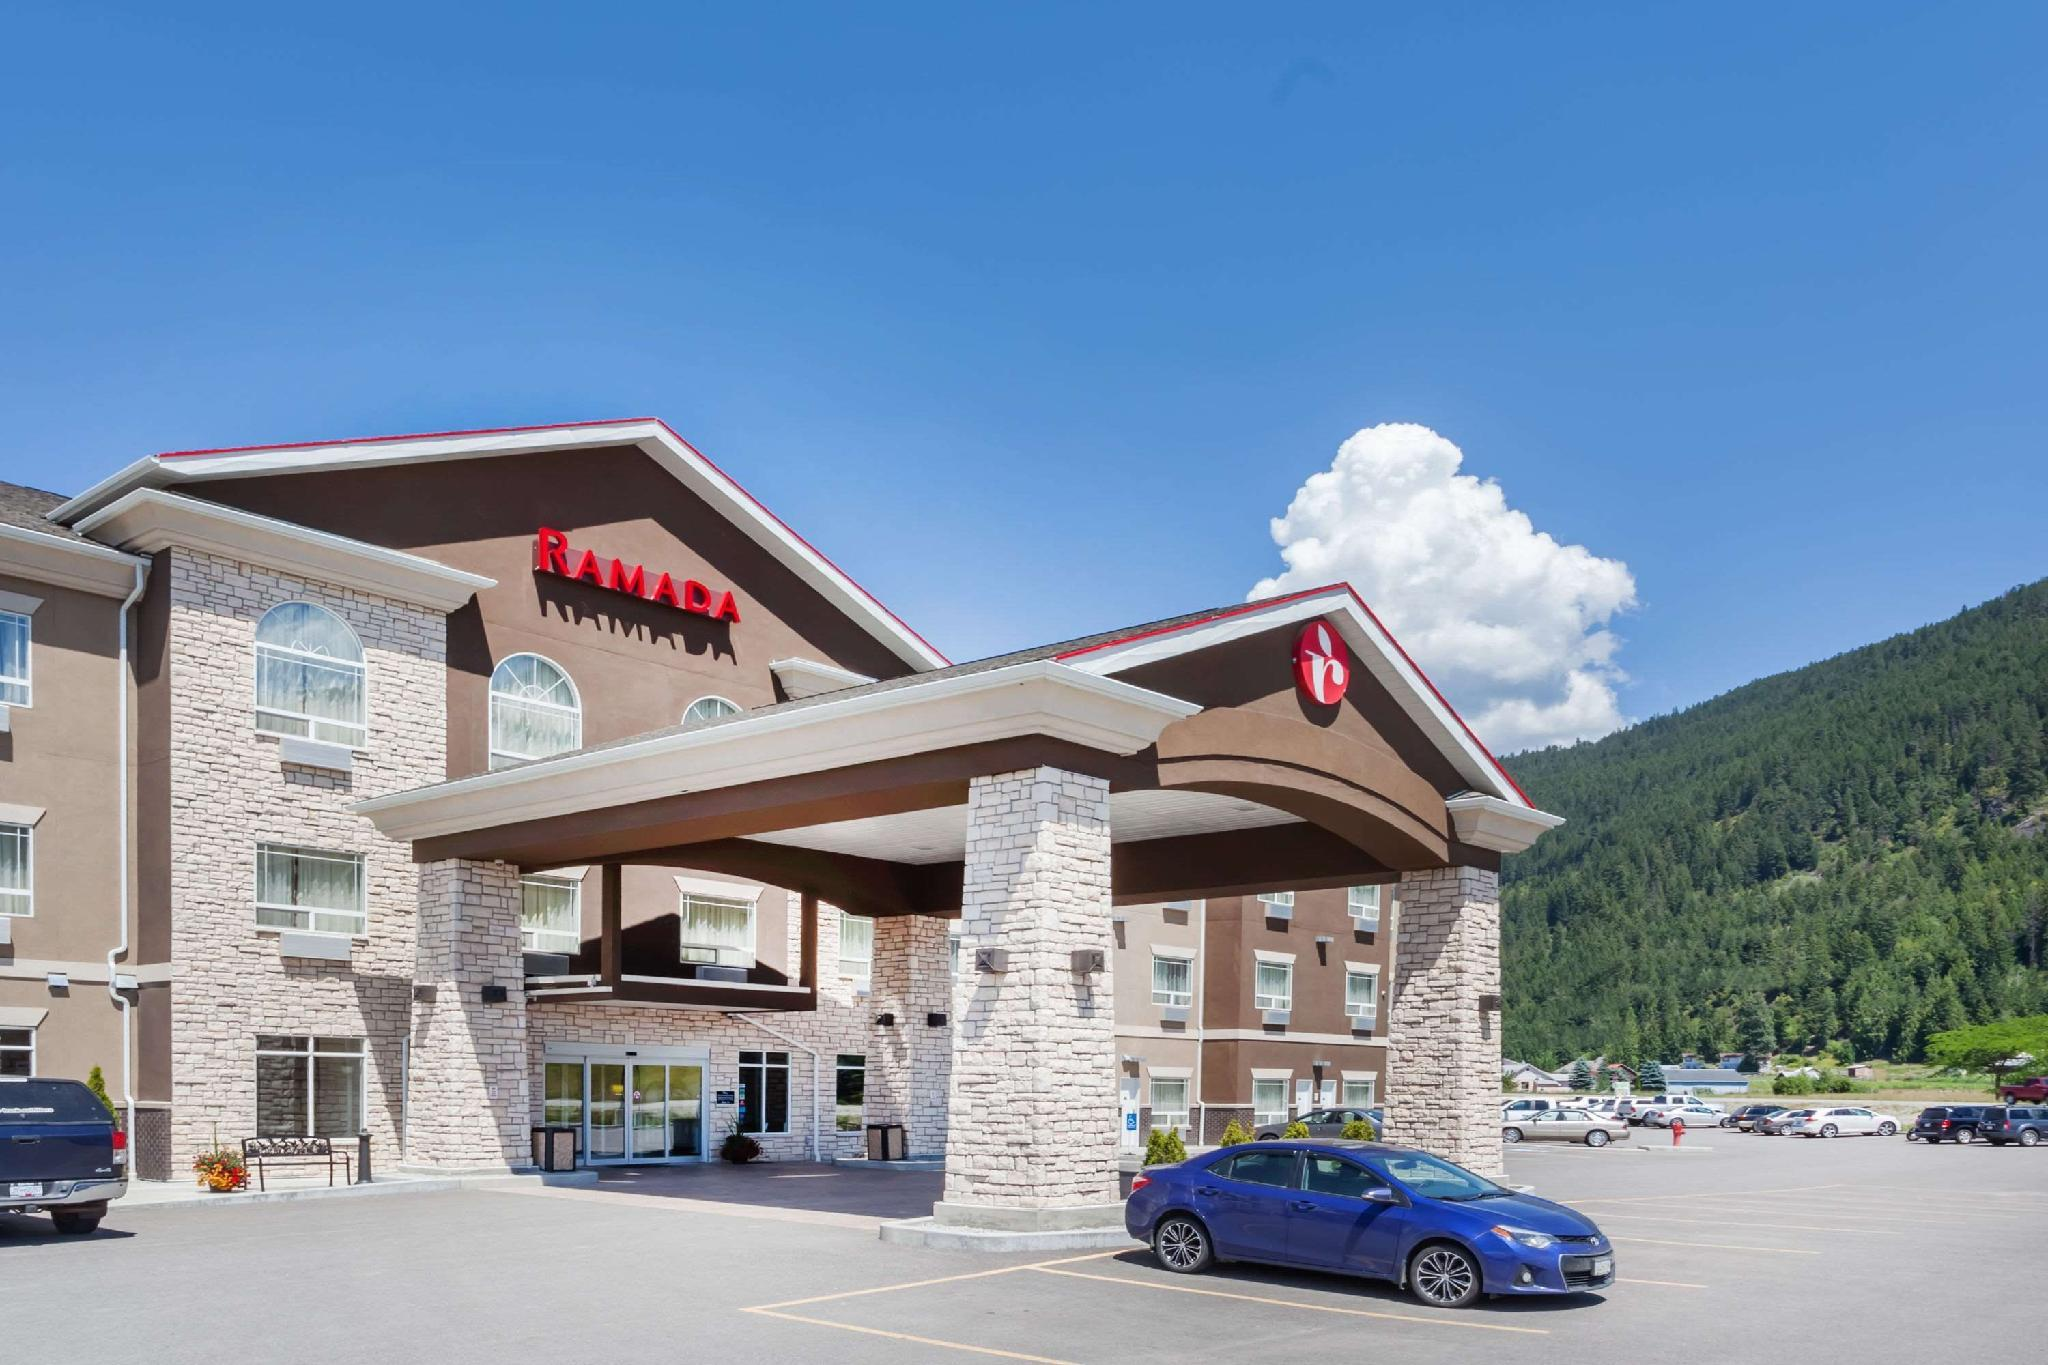 Ramada by Wyndham Creston, Central Kootenay